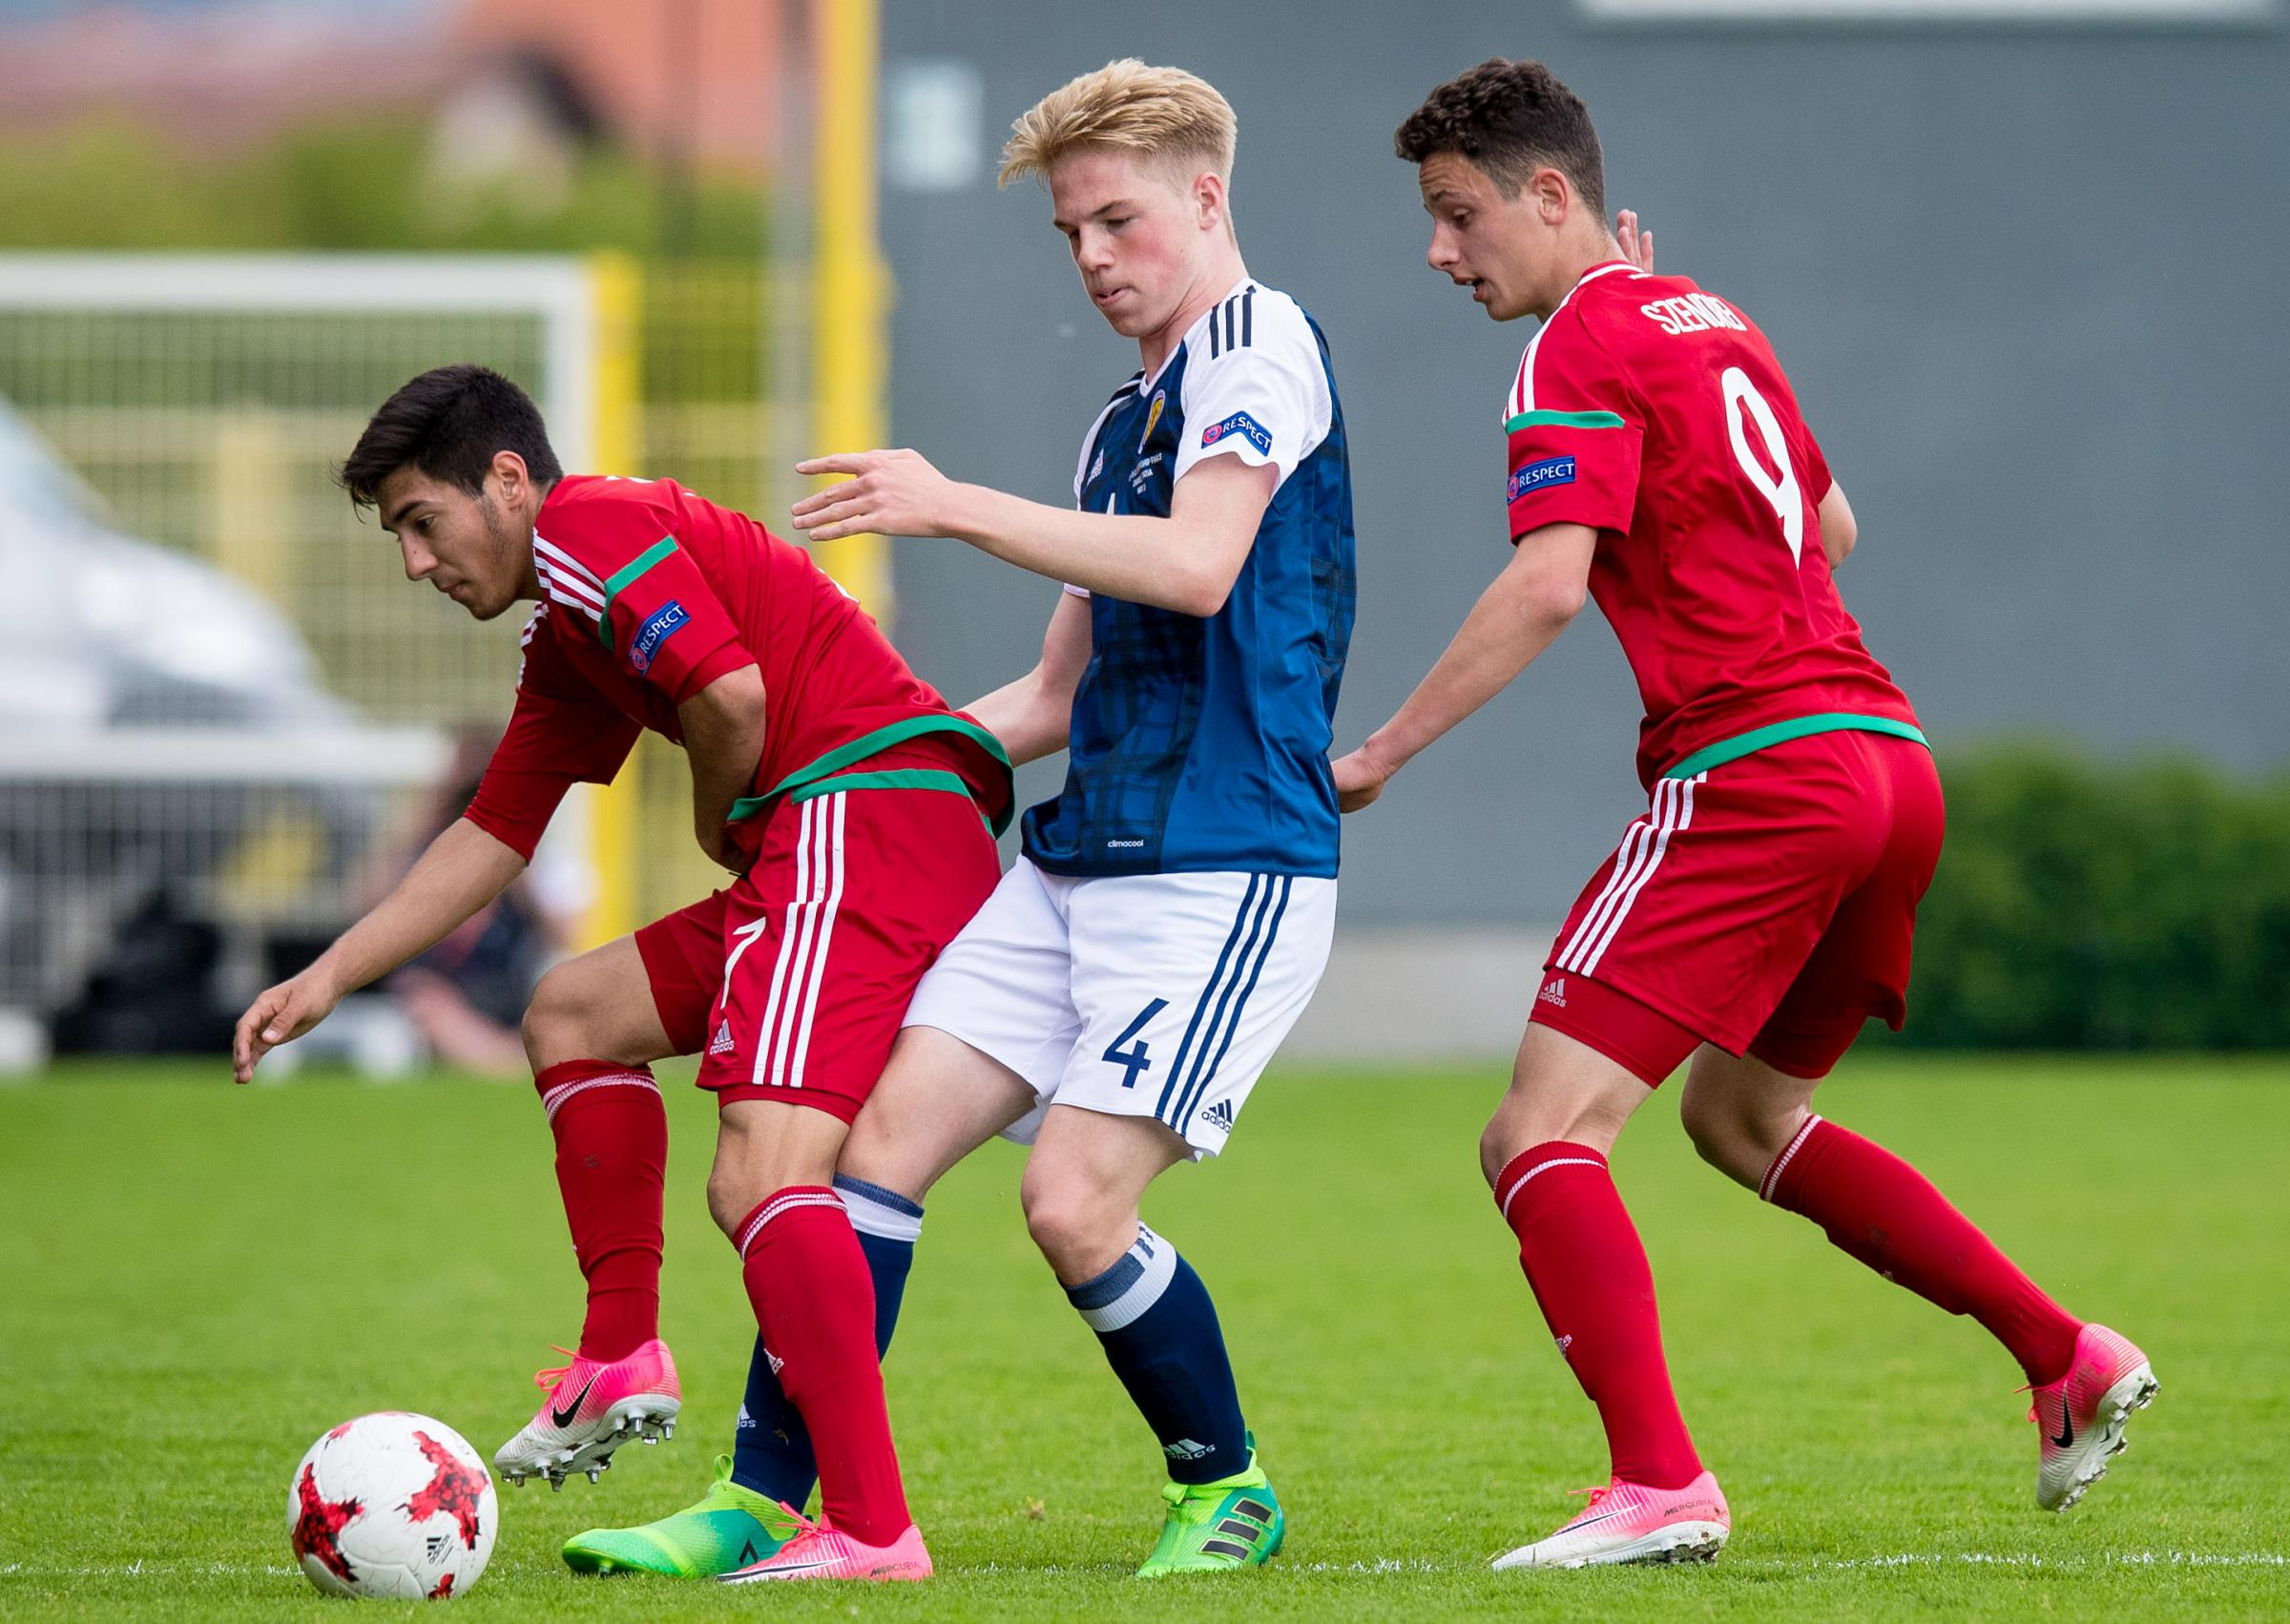 Scotland Under-17 1 Hungary Under-17 1 – Celtic youngster Welsh taking inspiration from Simunovic tackle in O** F*** match